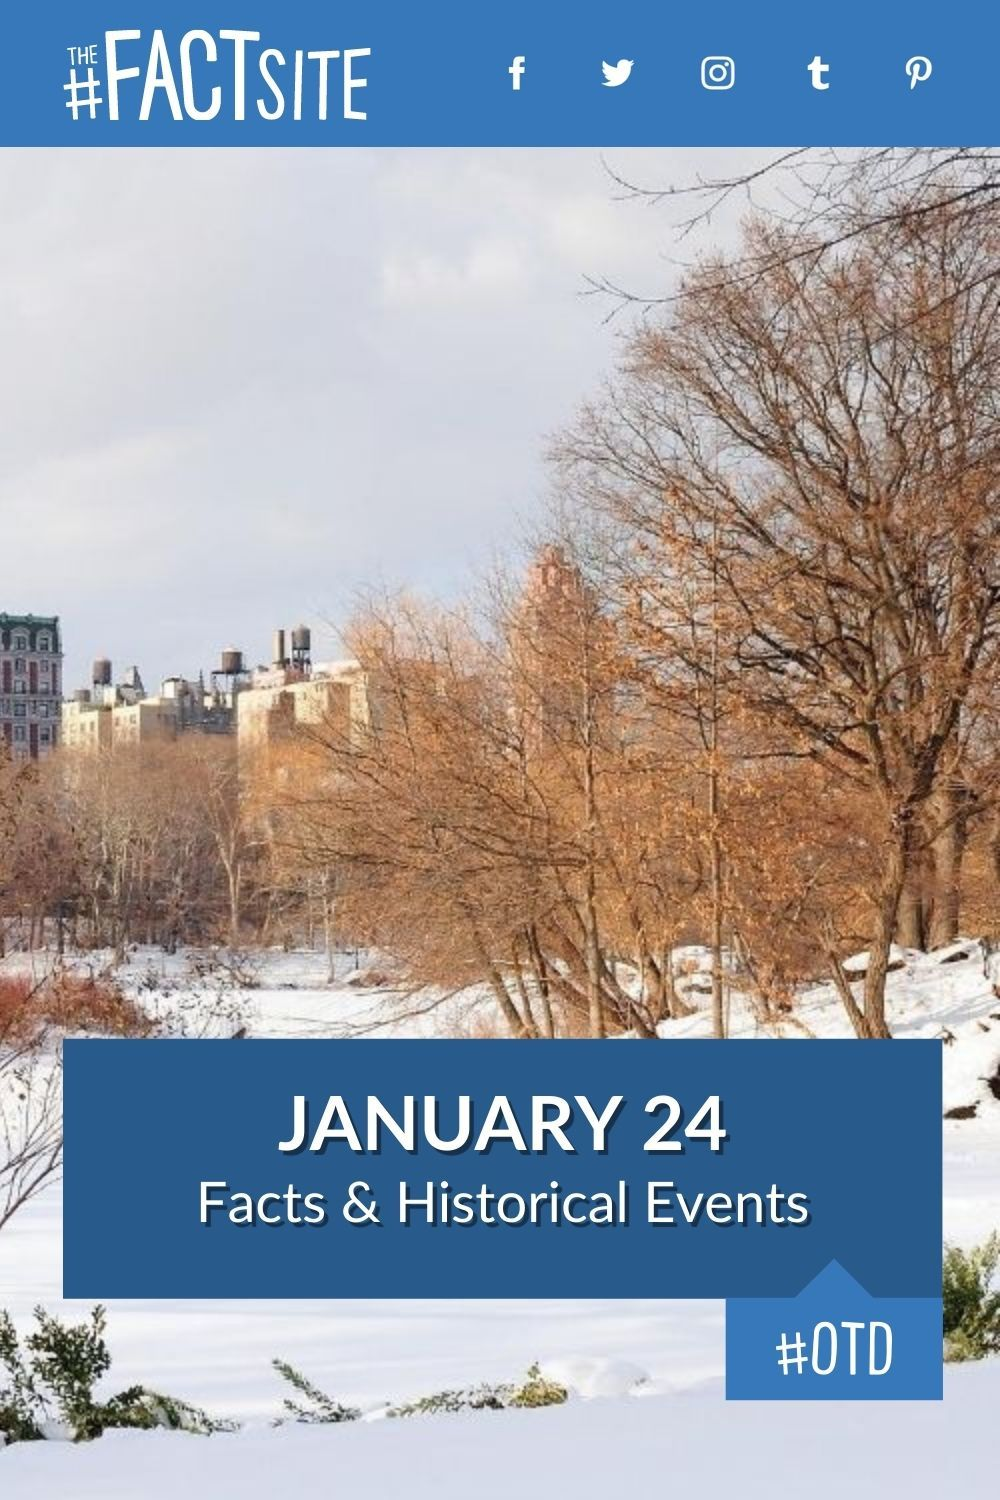 Facts & Historic Events That Happened on January 24